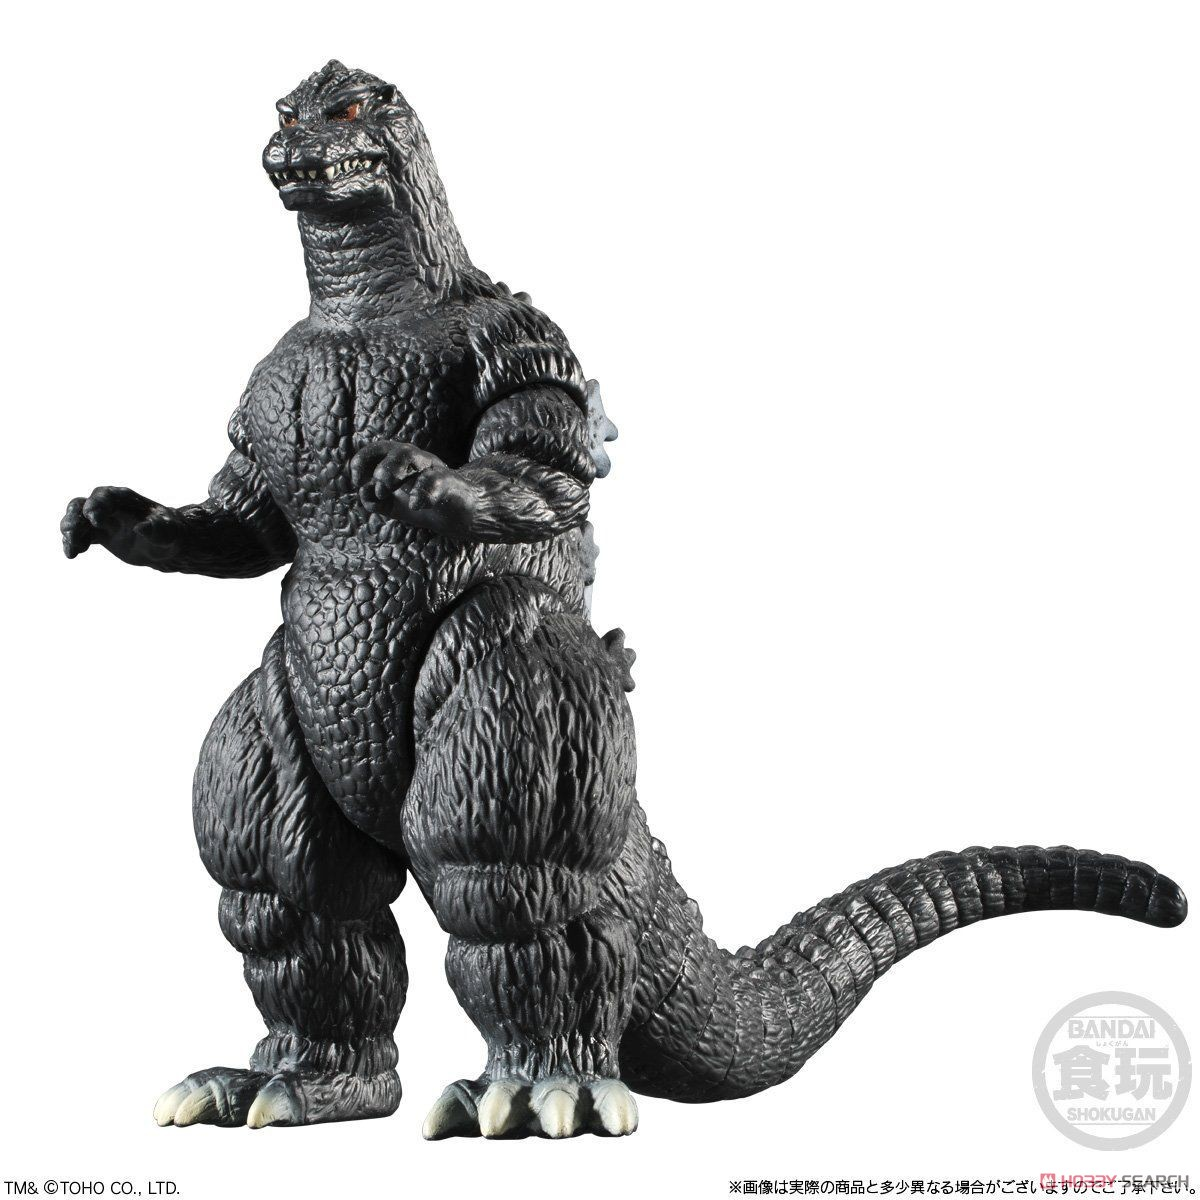 Godzilla Sincerity Complete Works Vol.2 (Set of 10) (Shokugan) Item picture4